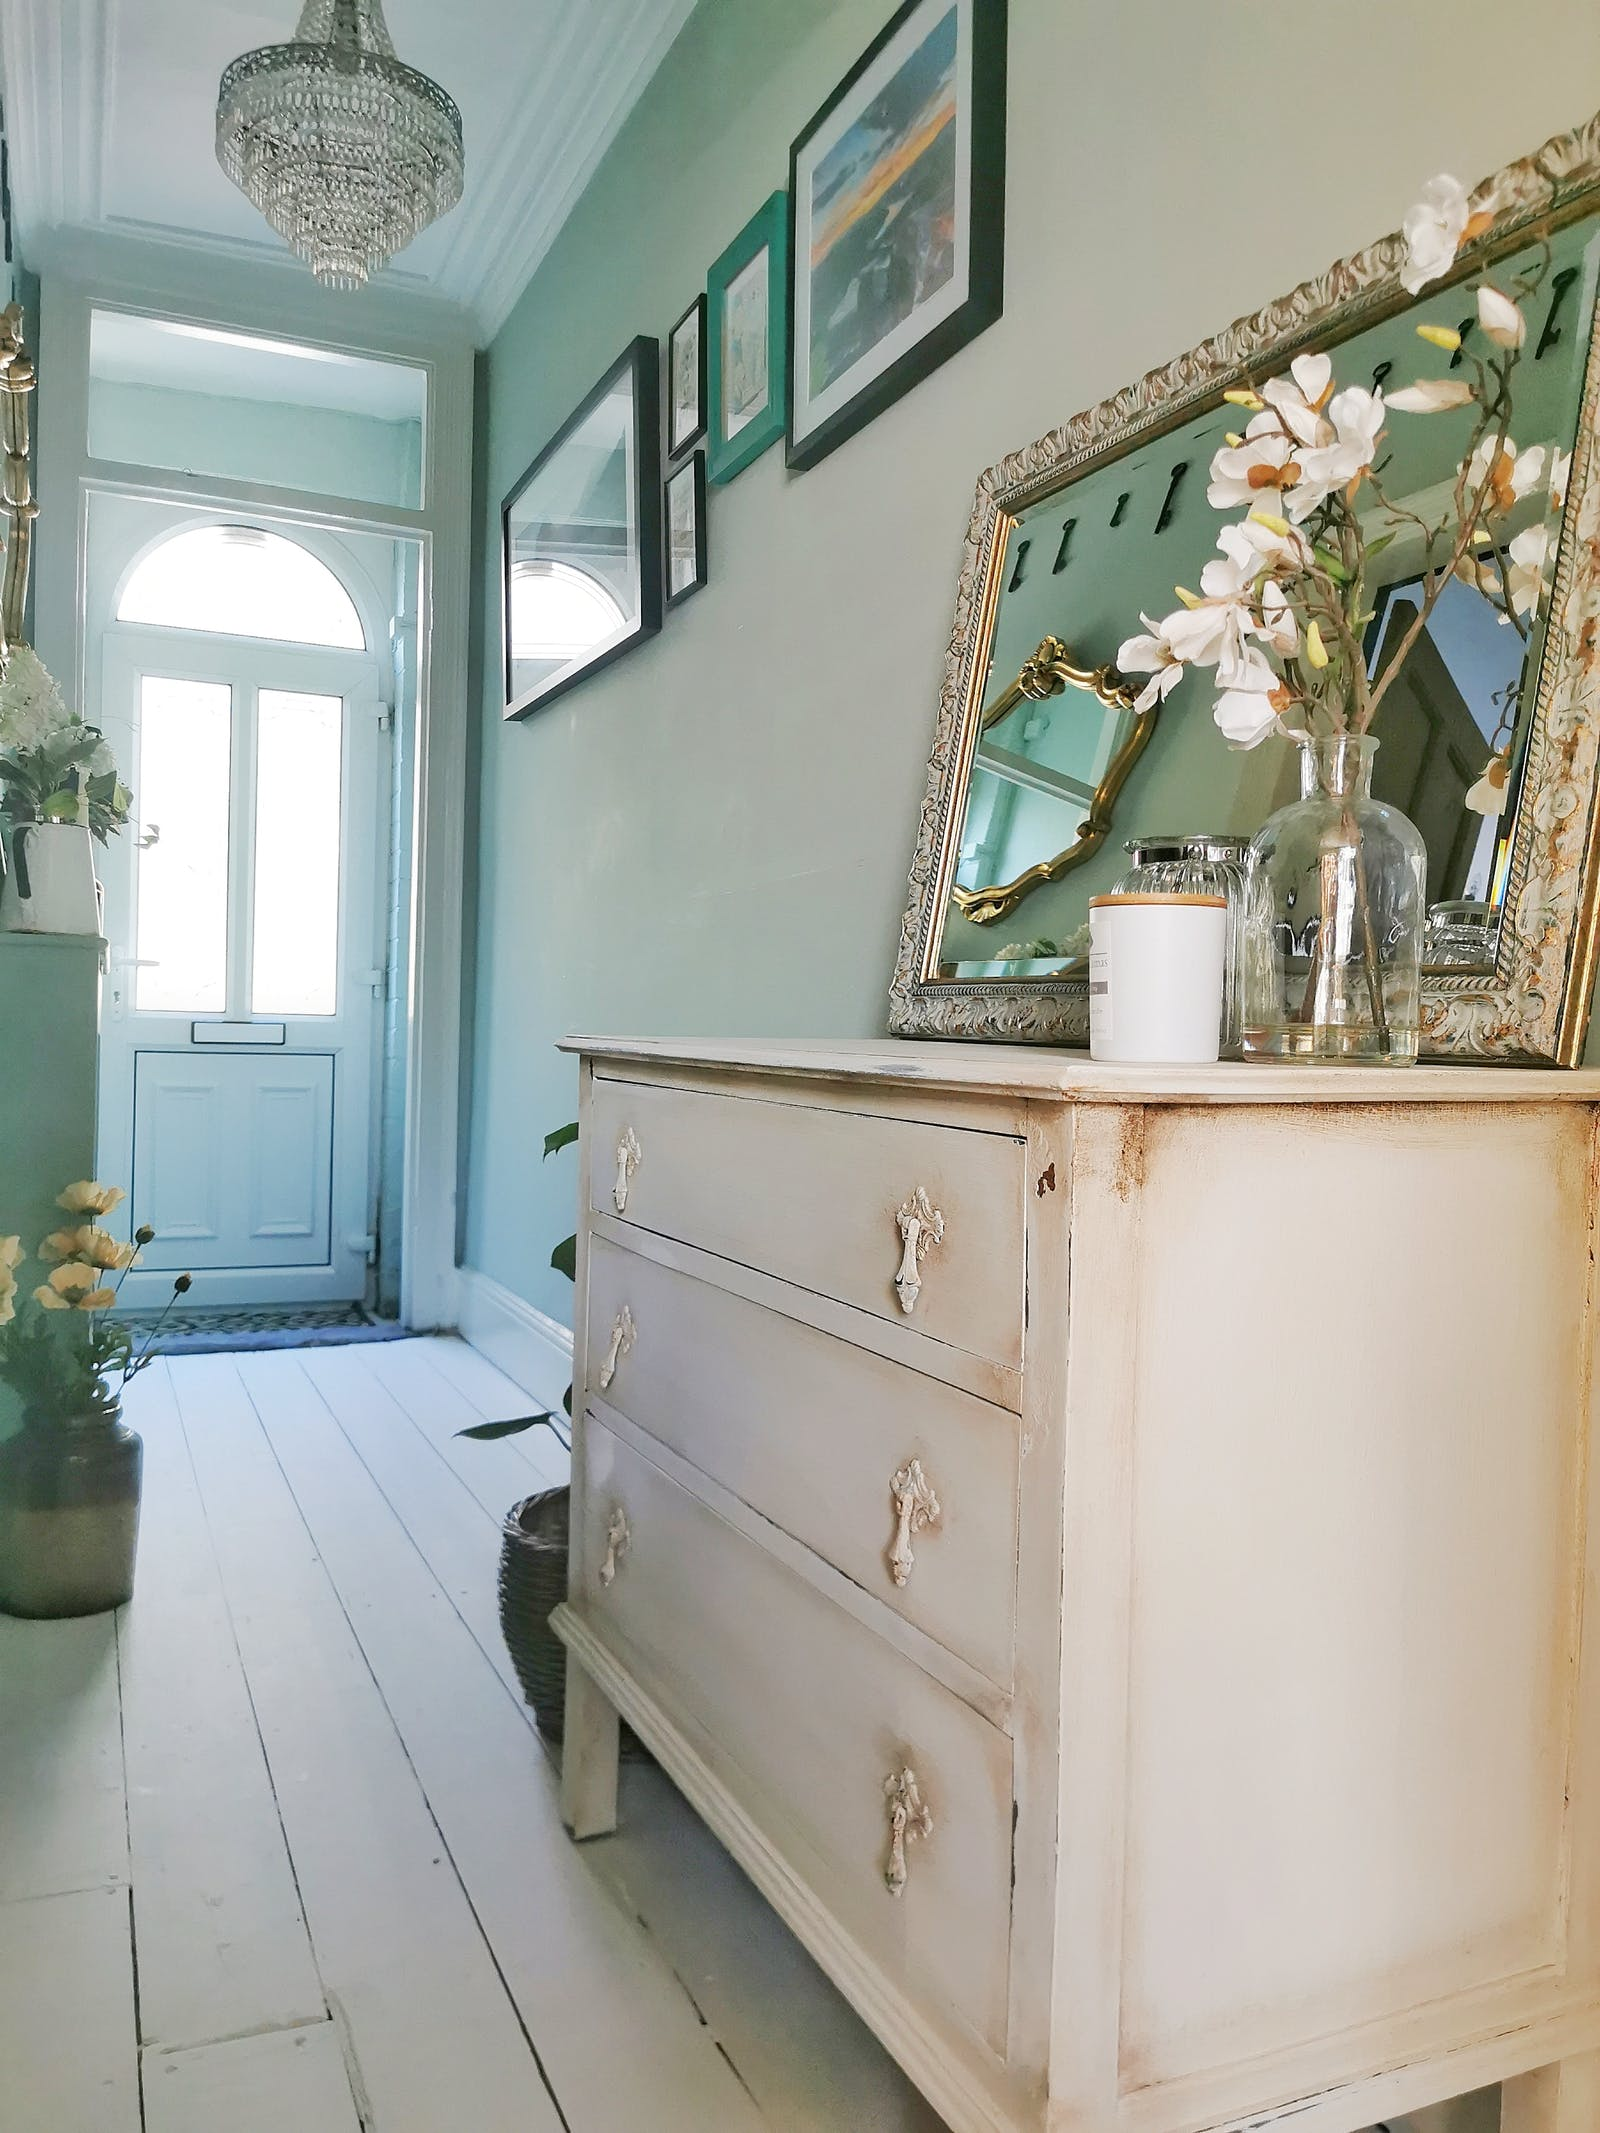 A massive vintage chest of drawers painted in white, placed in a light green hallway with framed pictures on the walls